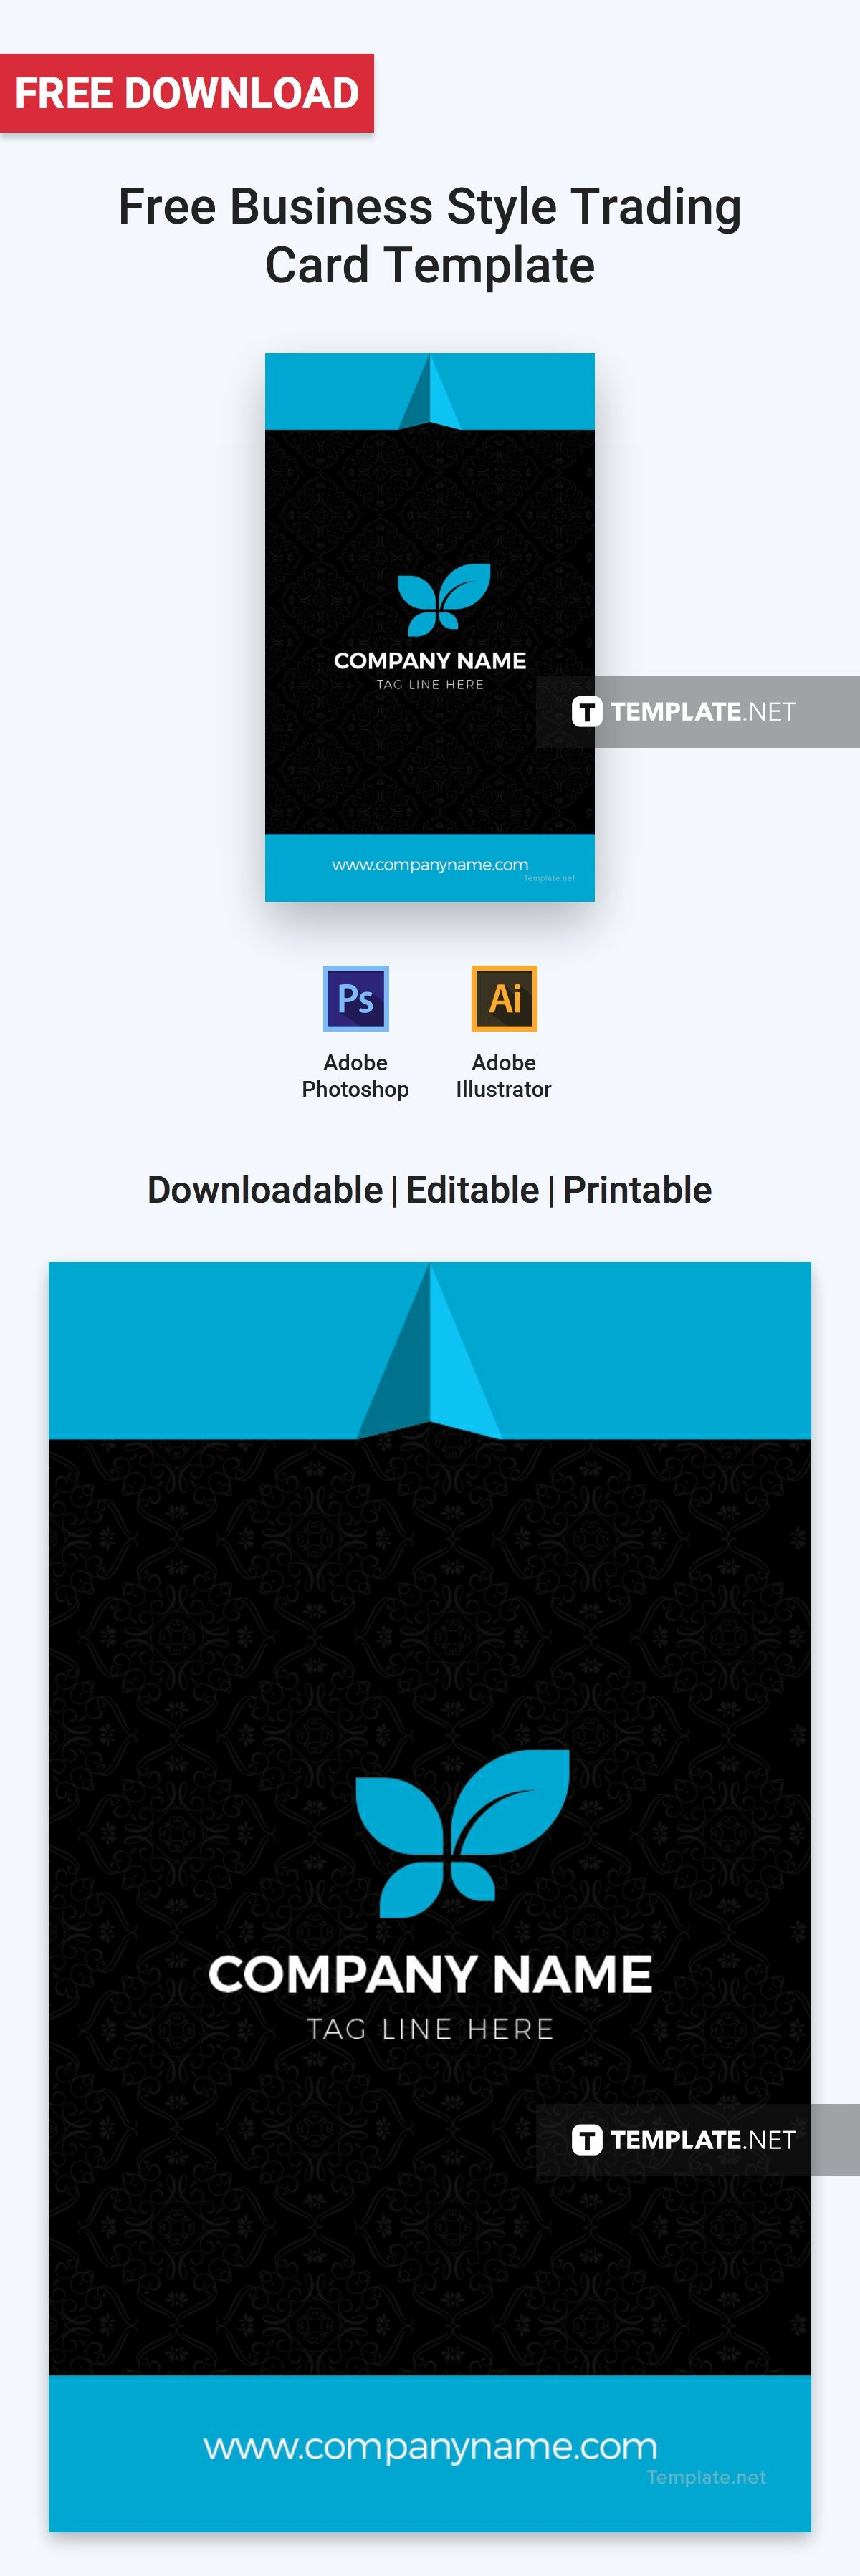 Business style trading card template free pdf word